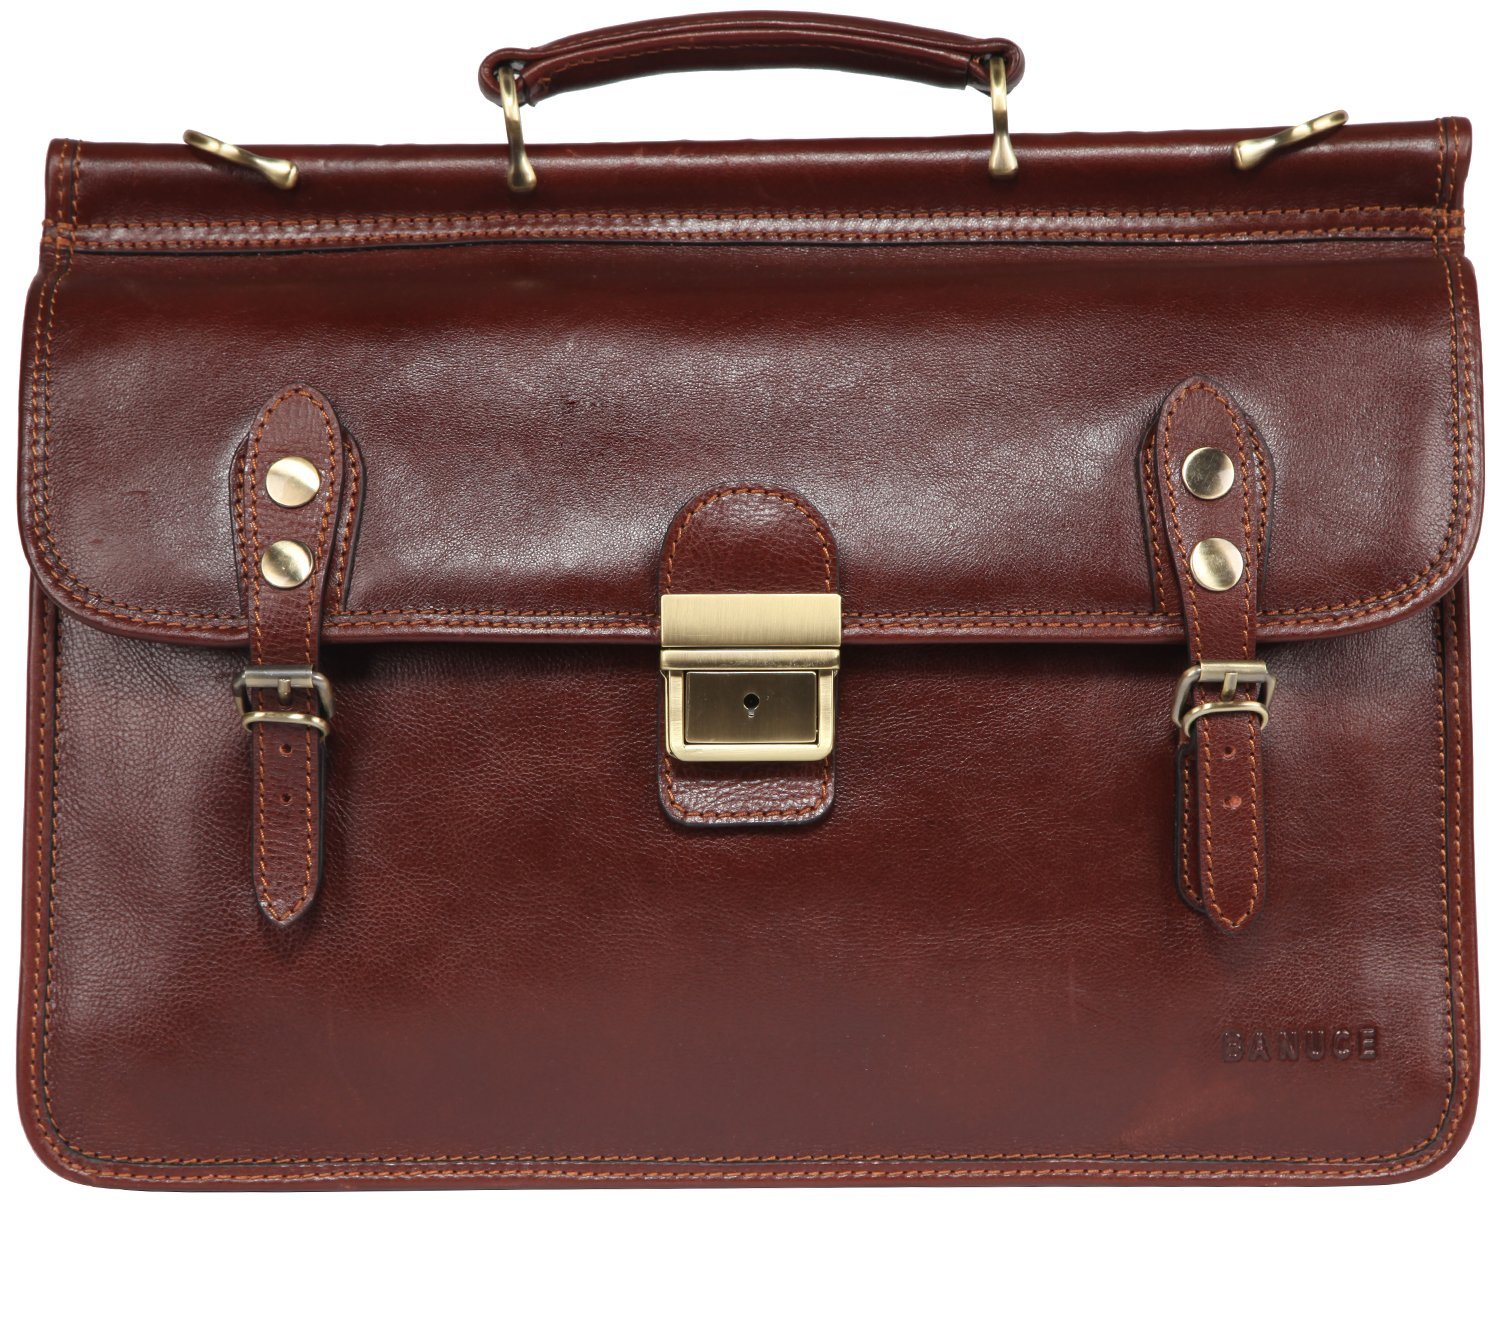 Banuce Mens Italian Leather Flapover Briefcase Tote 2way Business Laptop Messenger Bag Attache Case by Banuce (Image #3)